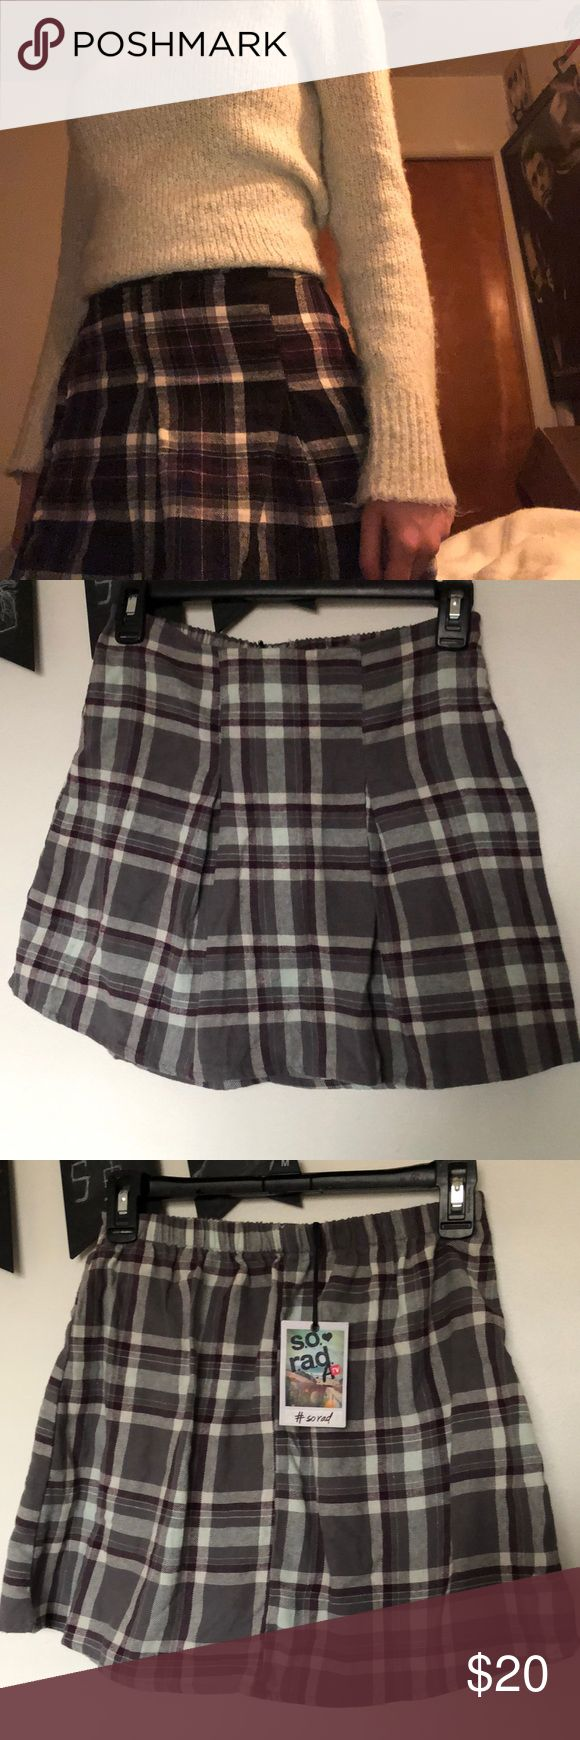 Grey plaid cotton skirt Grey and violet plaid cotton skirt- can be worn high waisted or normally: size XS s.o. r.a.d. by A tv Skirts Mini